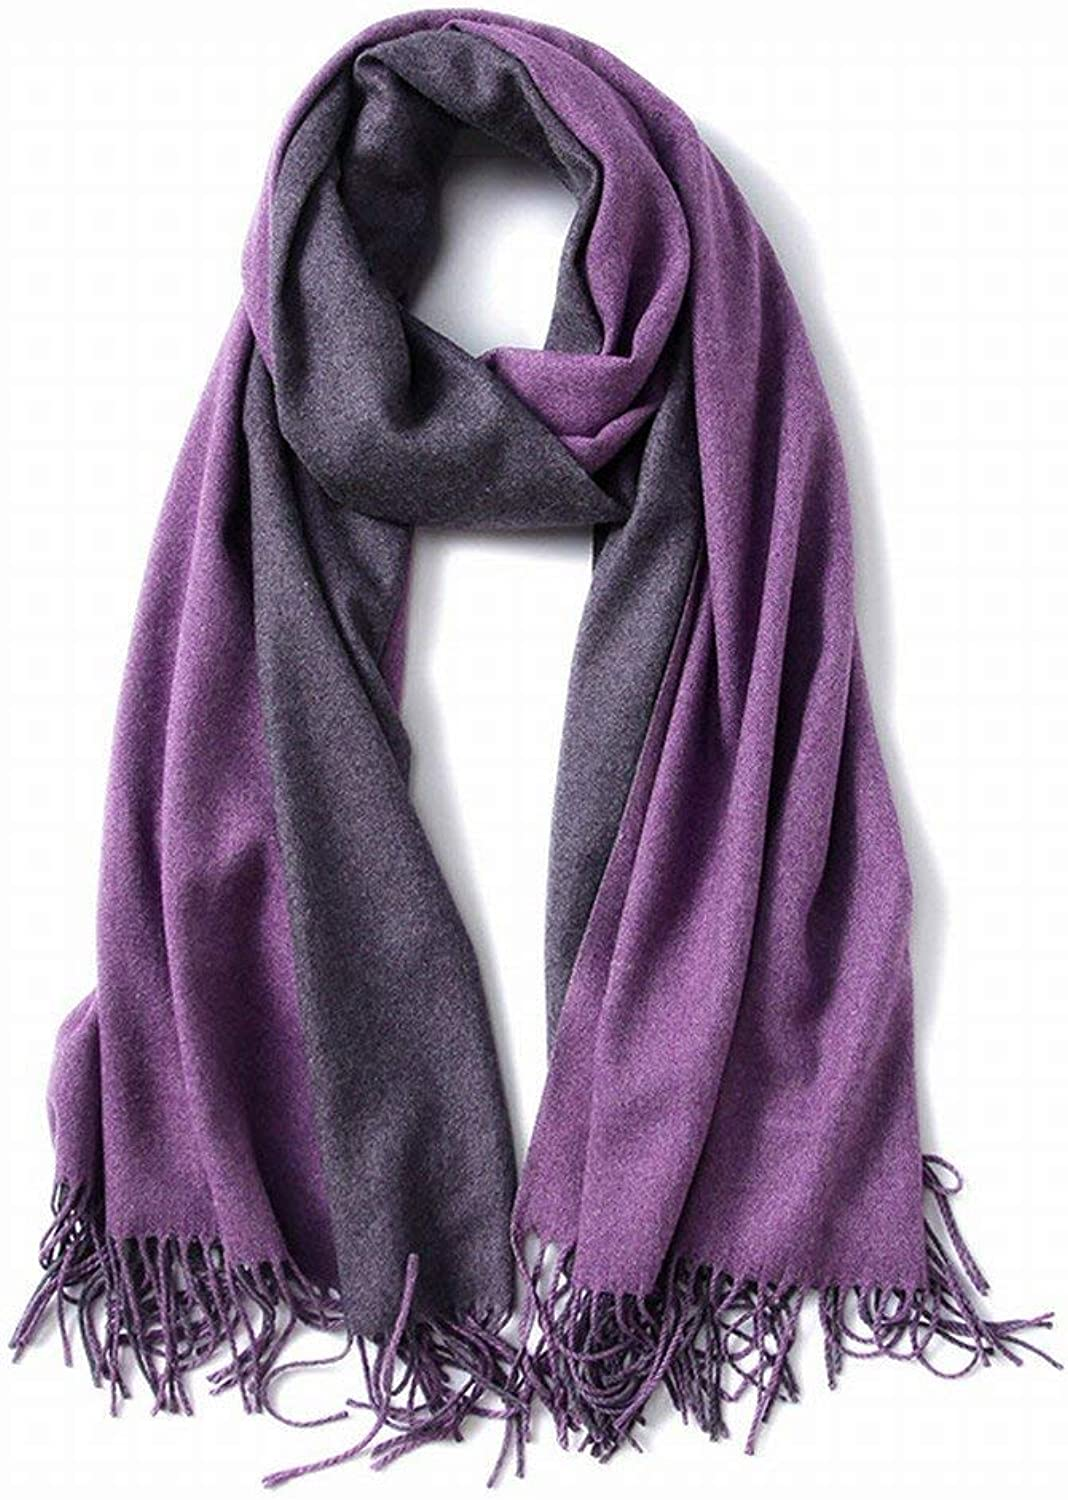 Dequanrong Autumn d Winter Scarves Western Wind Double Sided Pure Gift Warm Warm Shawl Fashion Scarf for Women